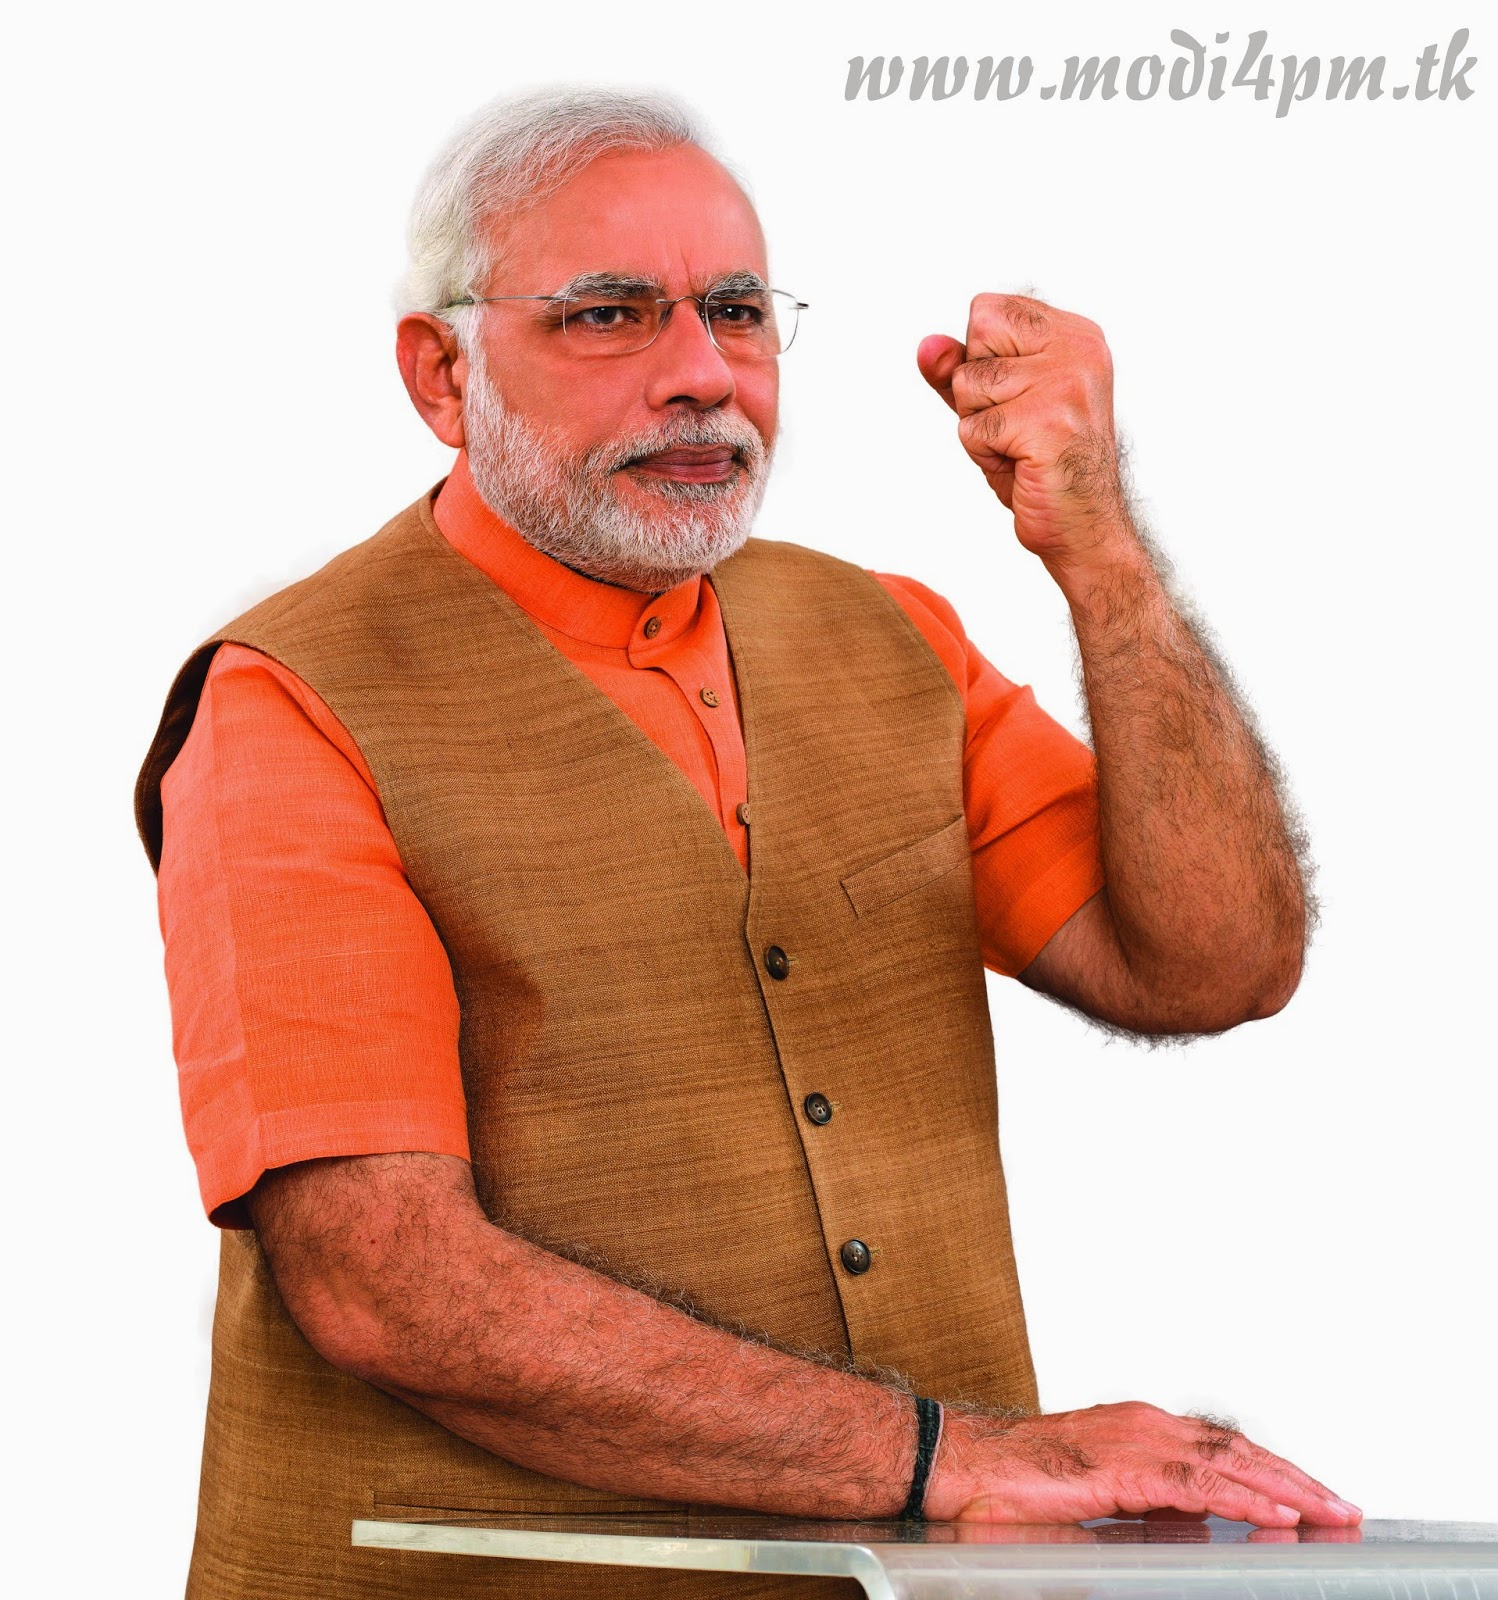 narendra modi When india's controversial prime minister narendra modi takes center stage tuesday at the world economic forum in davos, it will represent a massive turn-around for the once-shunned leader.